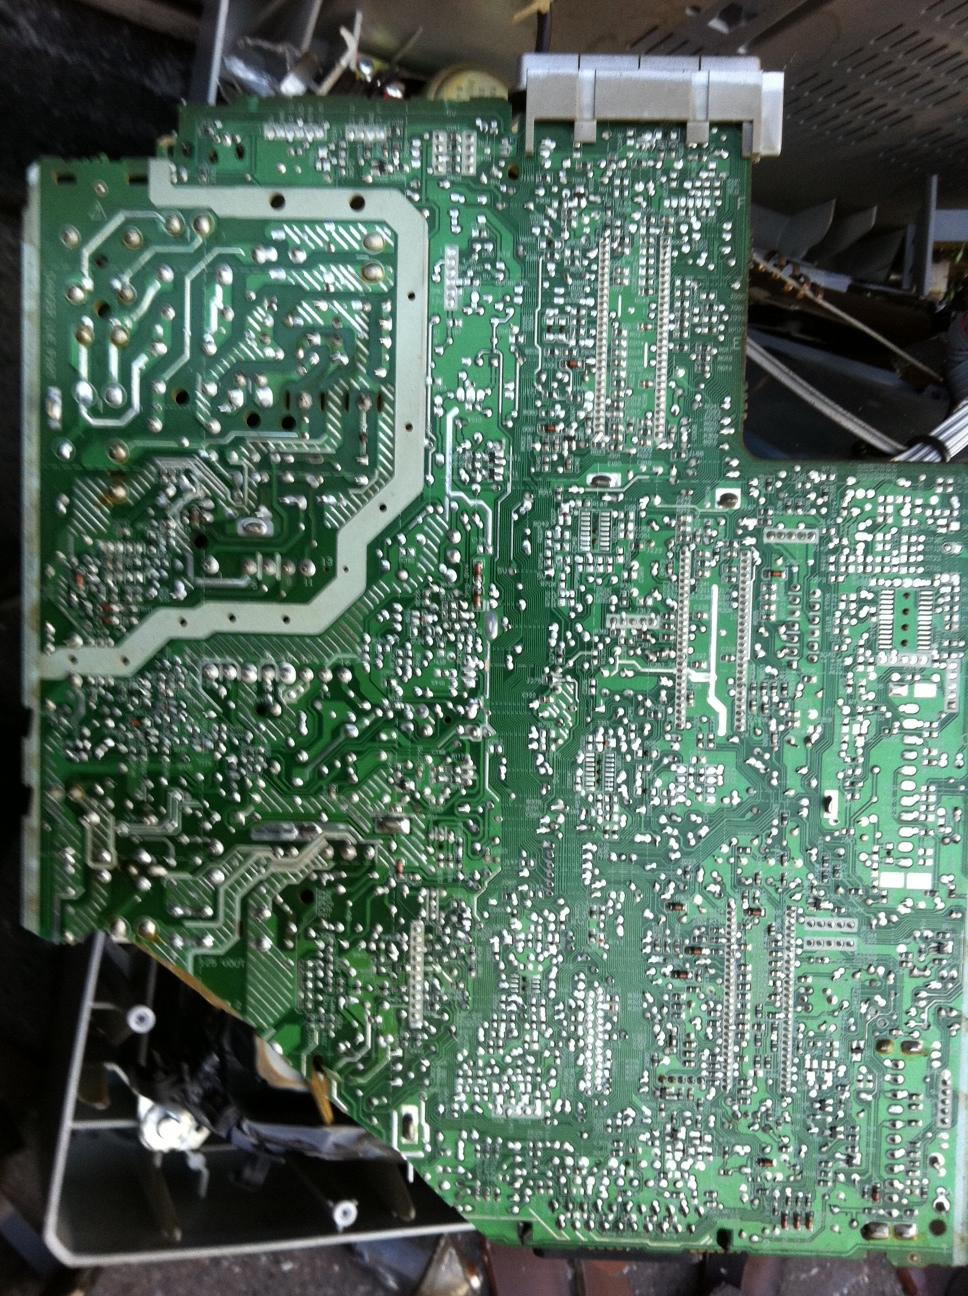 Magical Worlds Life And Art Circuit Boards Like Magic Appears A Few Months Or So Ago I Posted About My Fantastical Discovery Of Little World Contained Within The Circuitry Board Microwave Oven